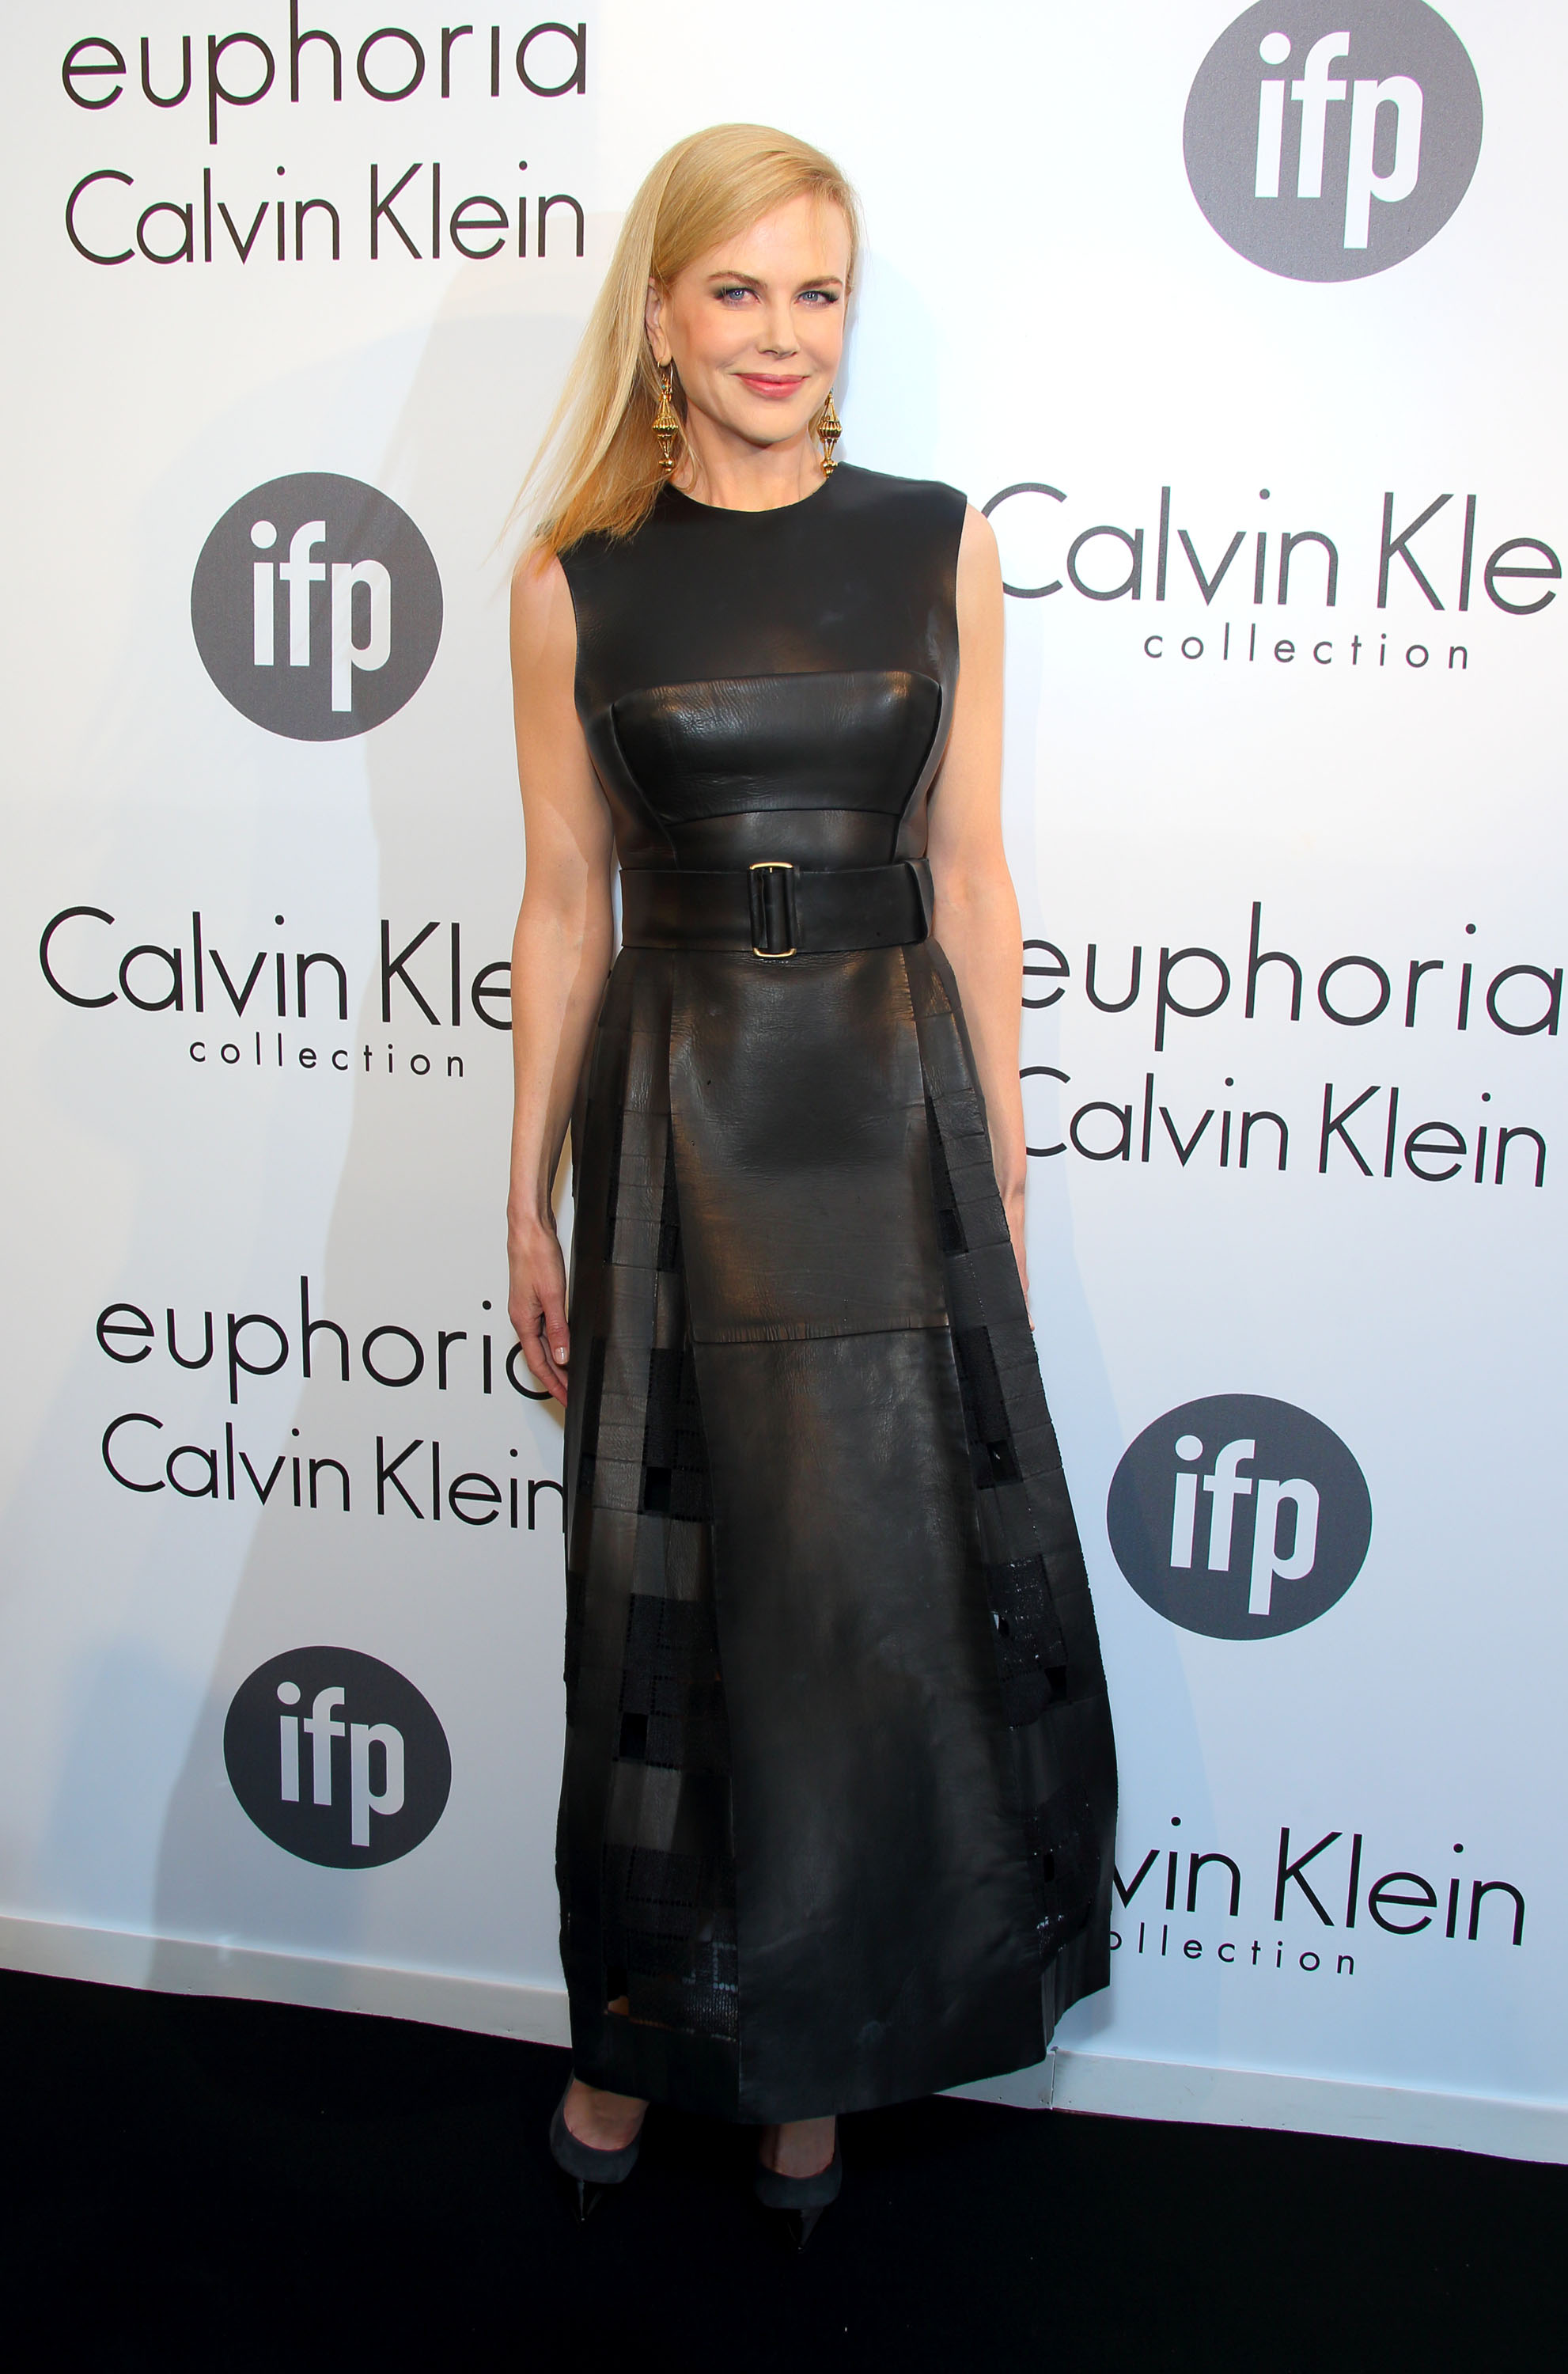 Nicole Kidman in a Calvin Klein sleeveless ankle-length belted leather dress from the Fall 2013 collection, paired with black Jimmy Choo ankle-strap pumps and . drop earrings by Fred Leighton.